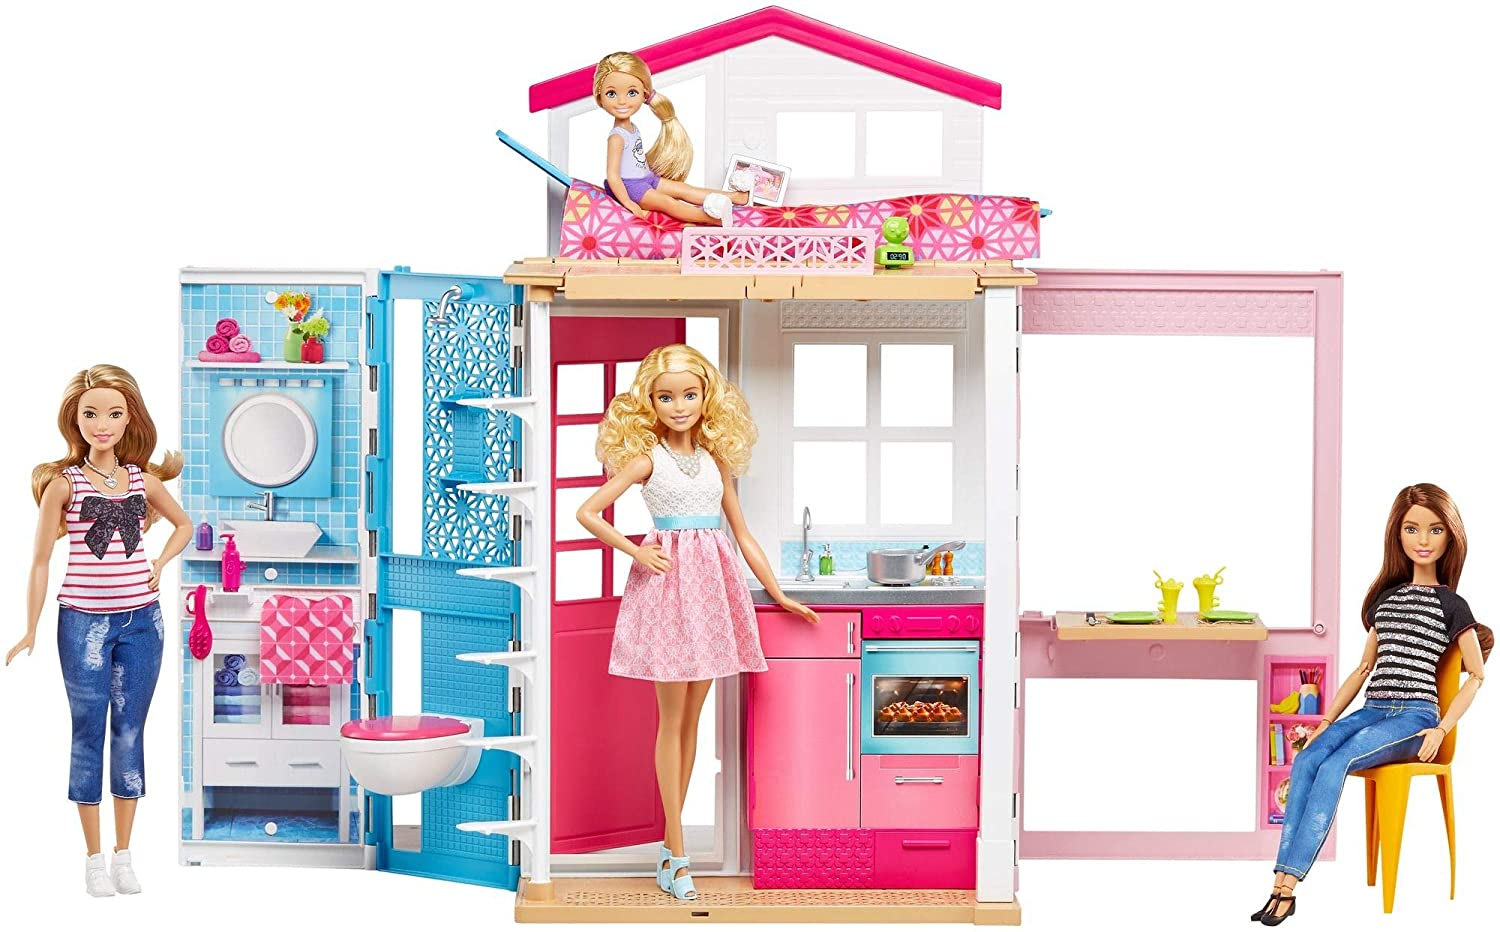 Barbie 2-Story House with Furniture & Accessories Mattel DVV47